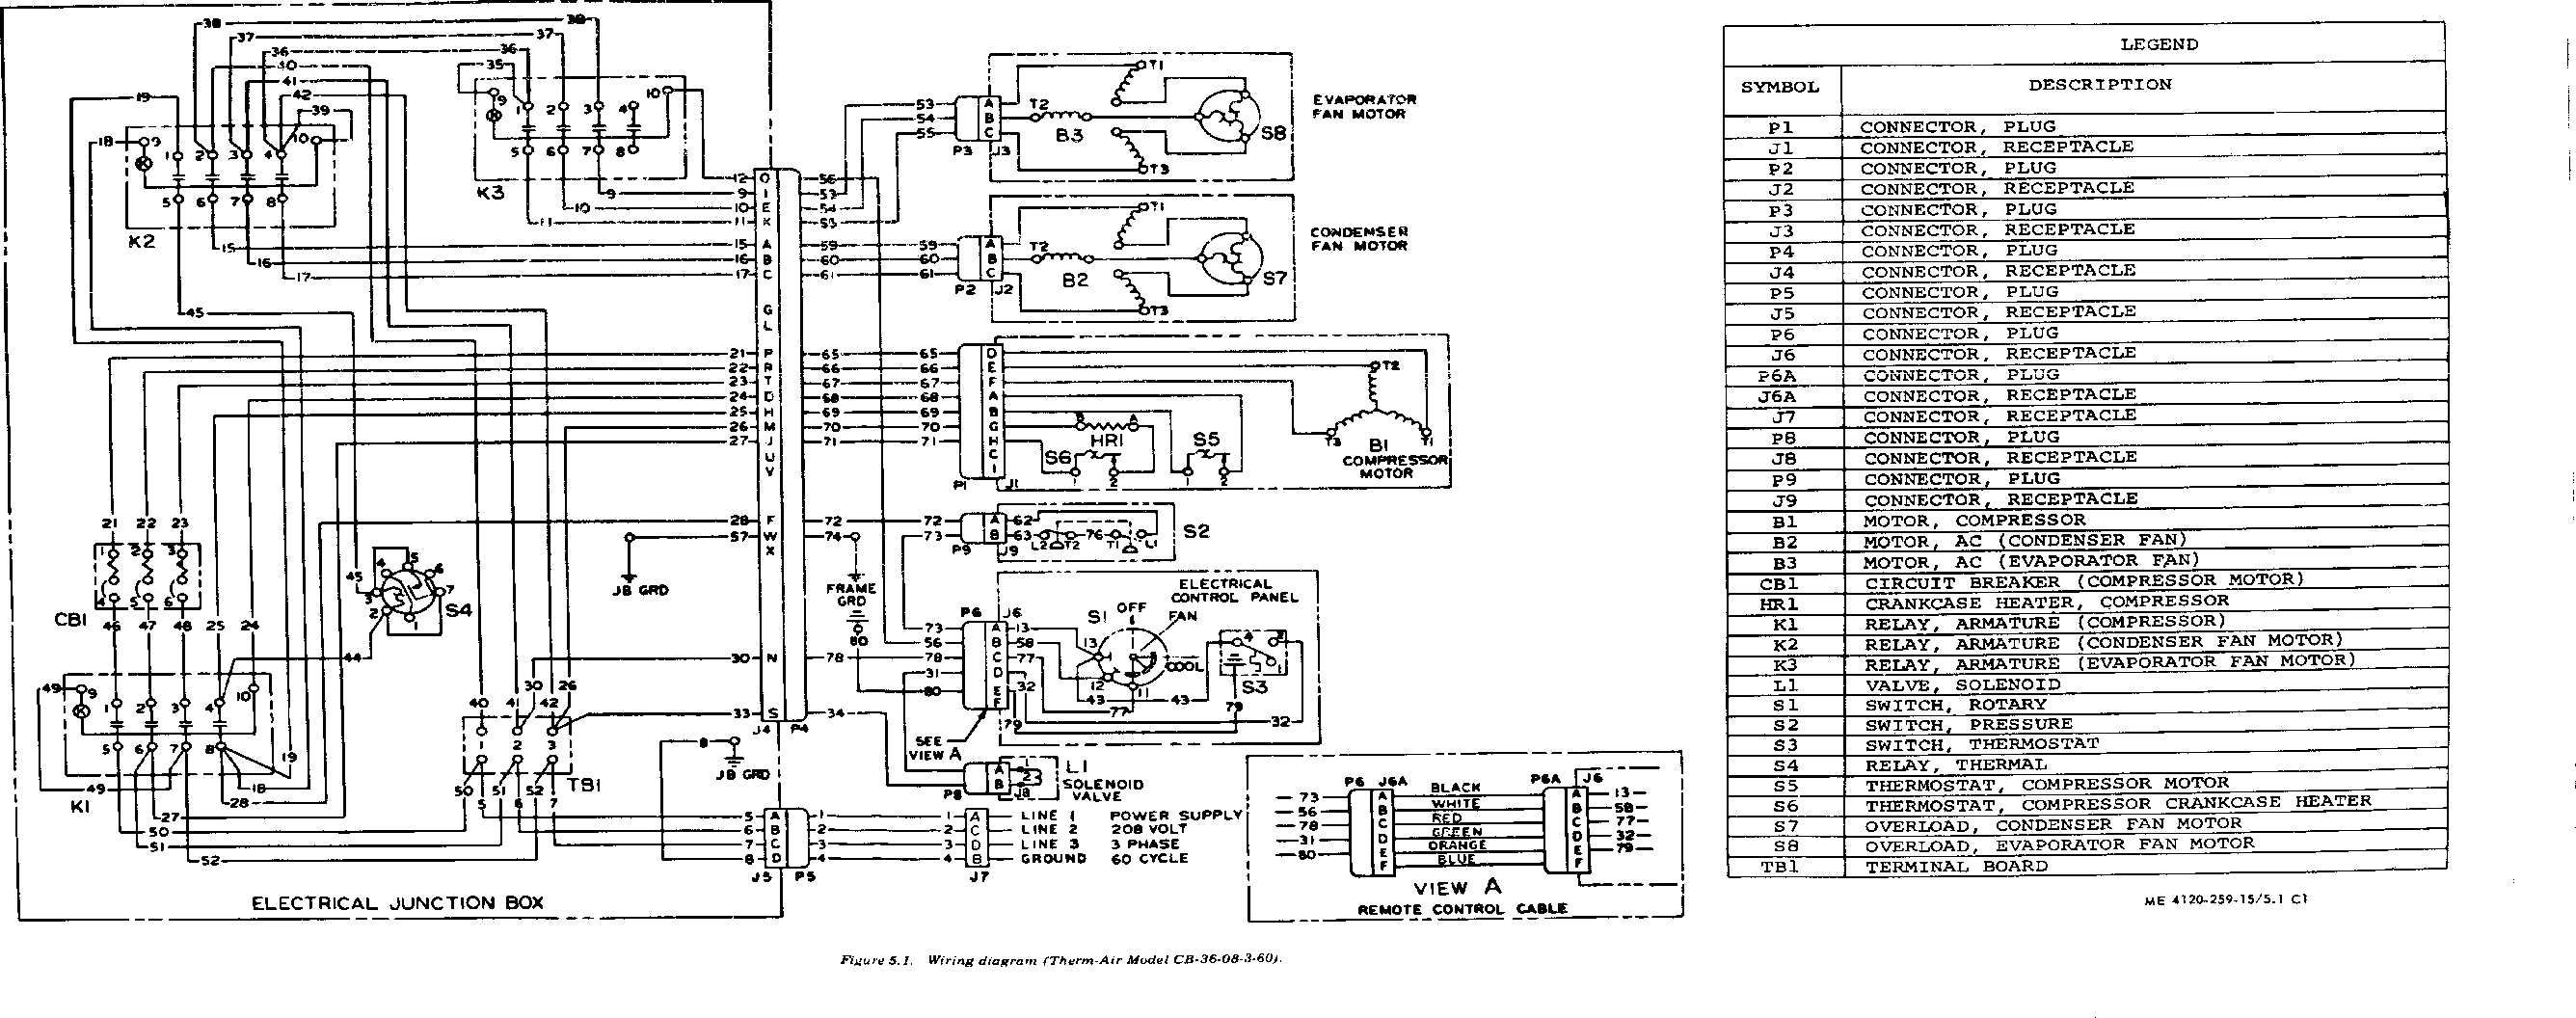 trane wsc060 wiring diagram Download-Trane Wiring Diagrams Diagram In autoctono 11-t